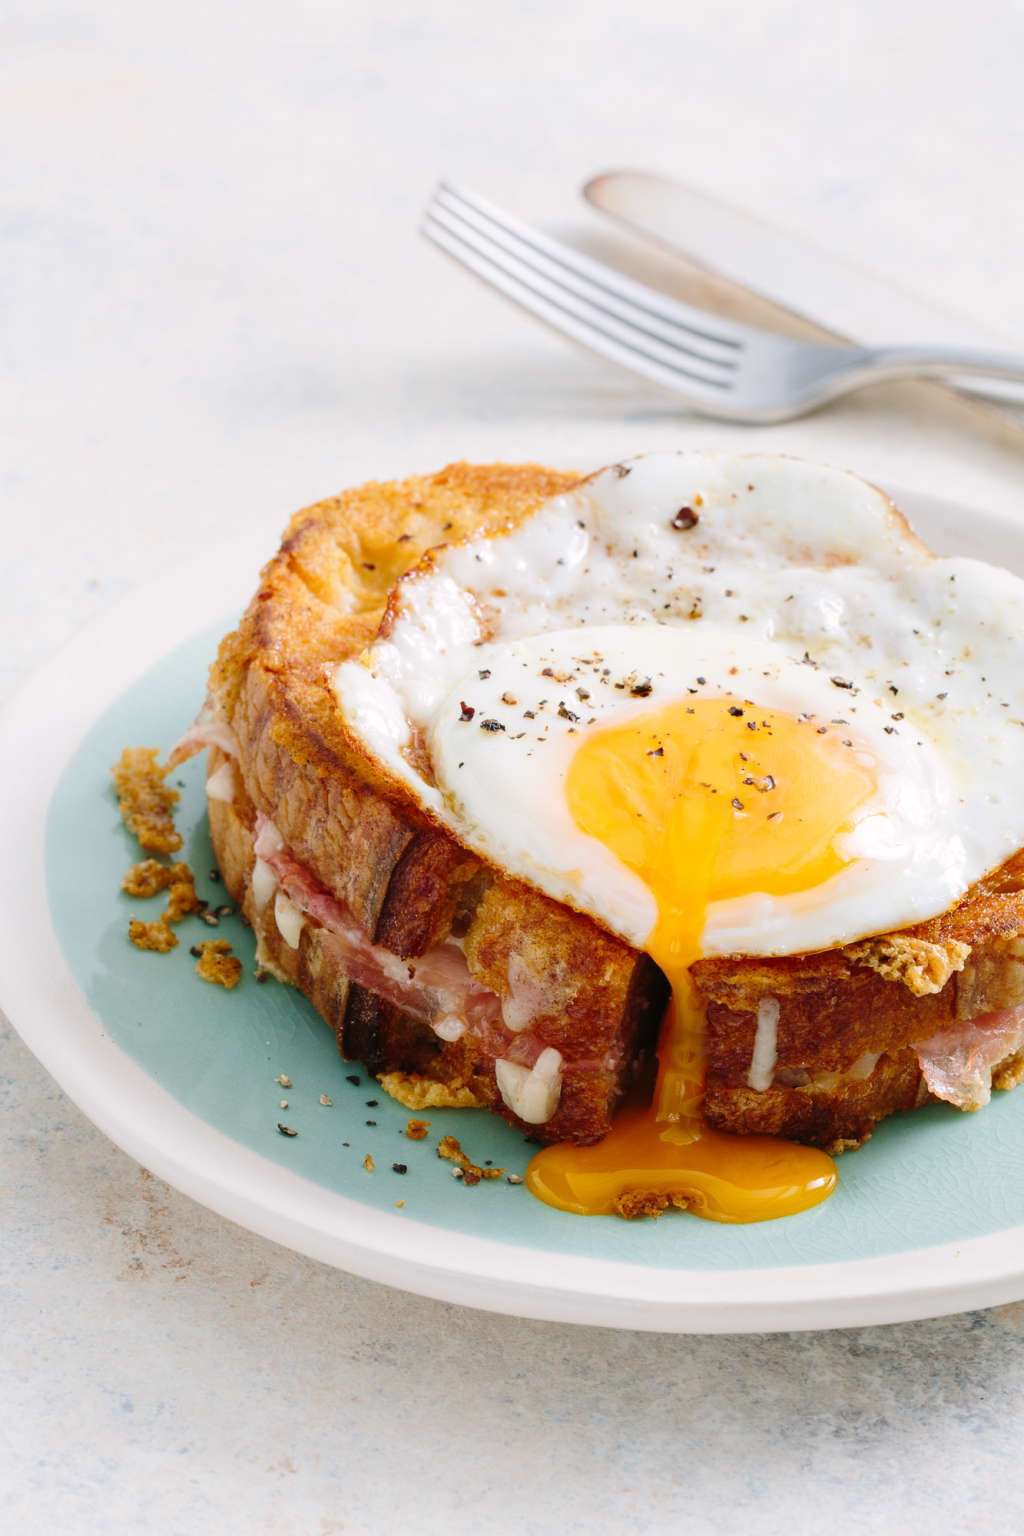 The Crispiest, Cheesiest, Frenchiest Croque Madame